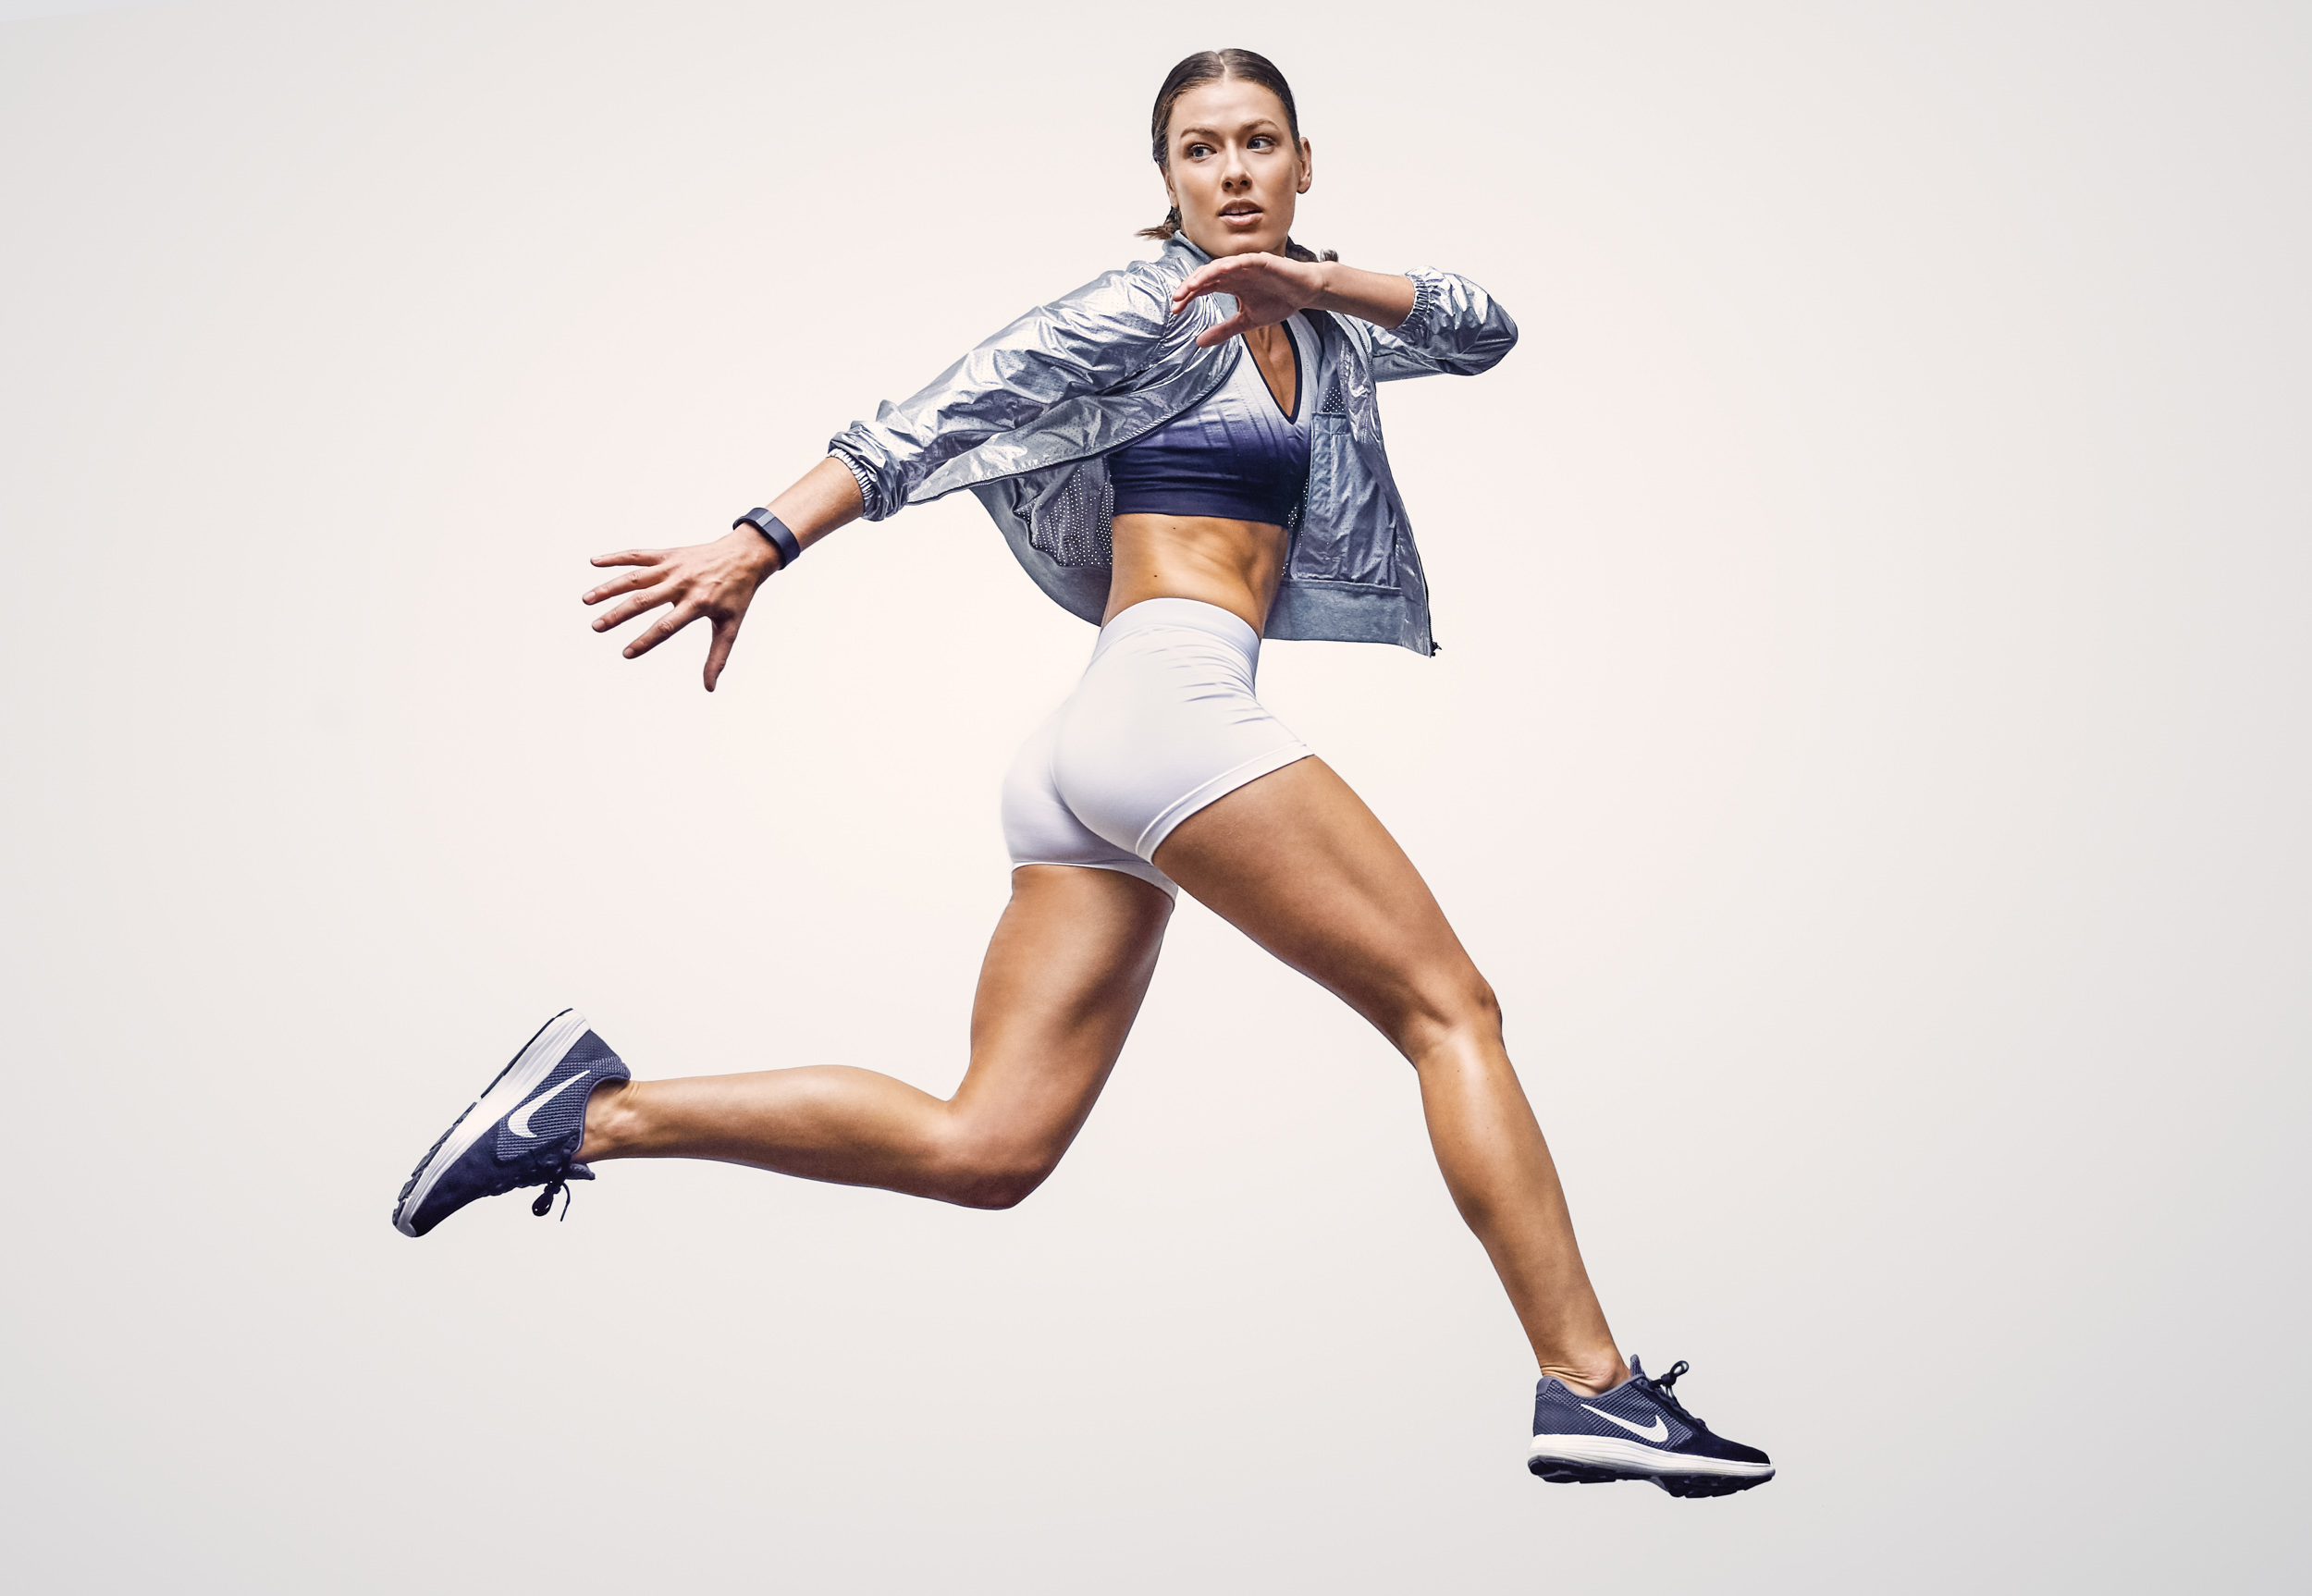 Female athlete in silver Nike track jacket and shorts jumps into the air in studio